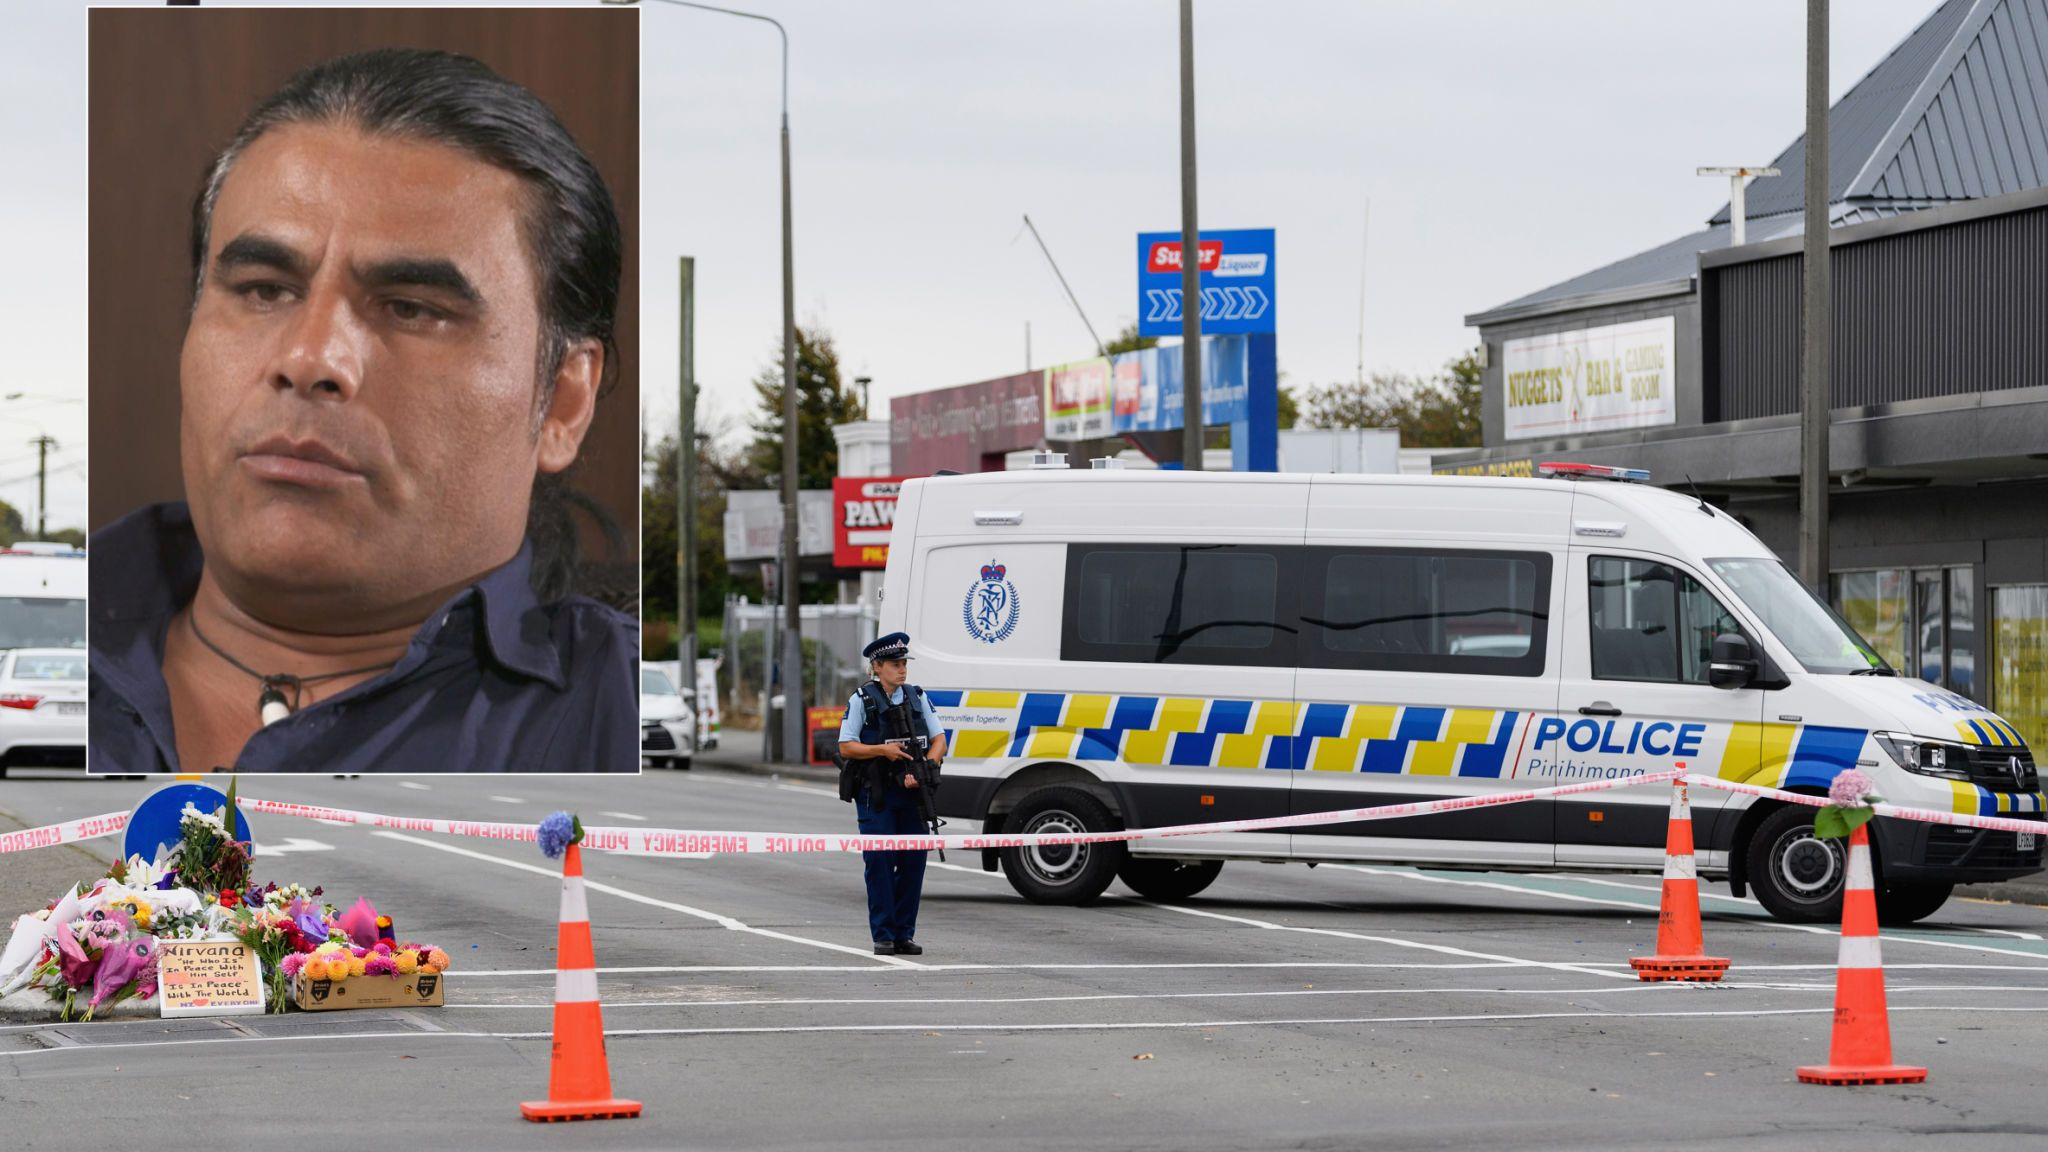 Christchurch shootings Stories of Heroism | Abdul Aziz Dodges Bullets and Confronts Shooter